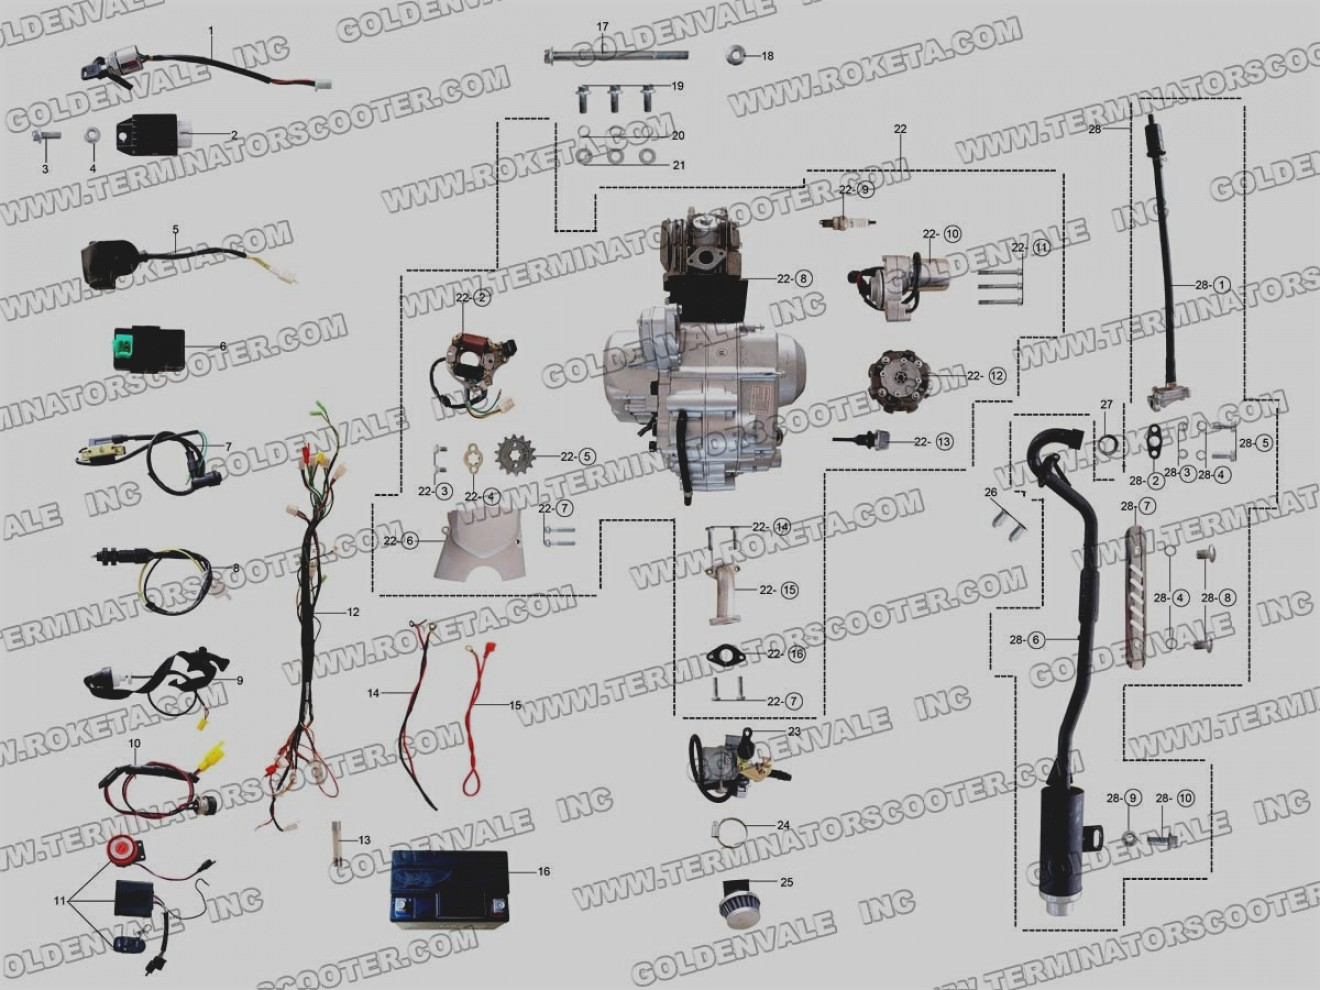 Taotao 110cc wiring harness diagram electrical work wiring diagram wiring diagram for tao tao 110cc 4 wheeler wire center u2022 rh linxglobal co 110cc atv wiring hanma 110 wiring diagram asfbconference2016